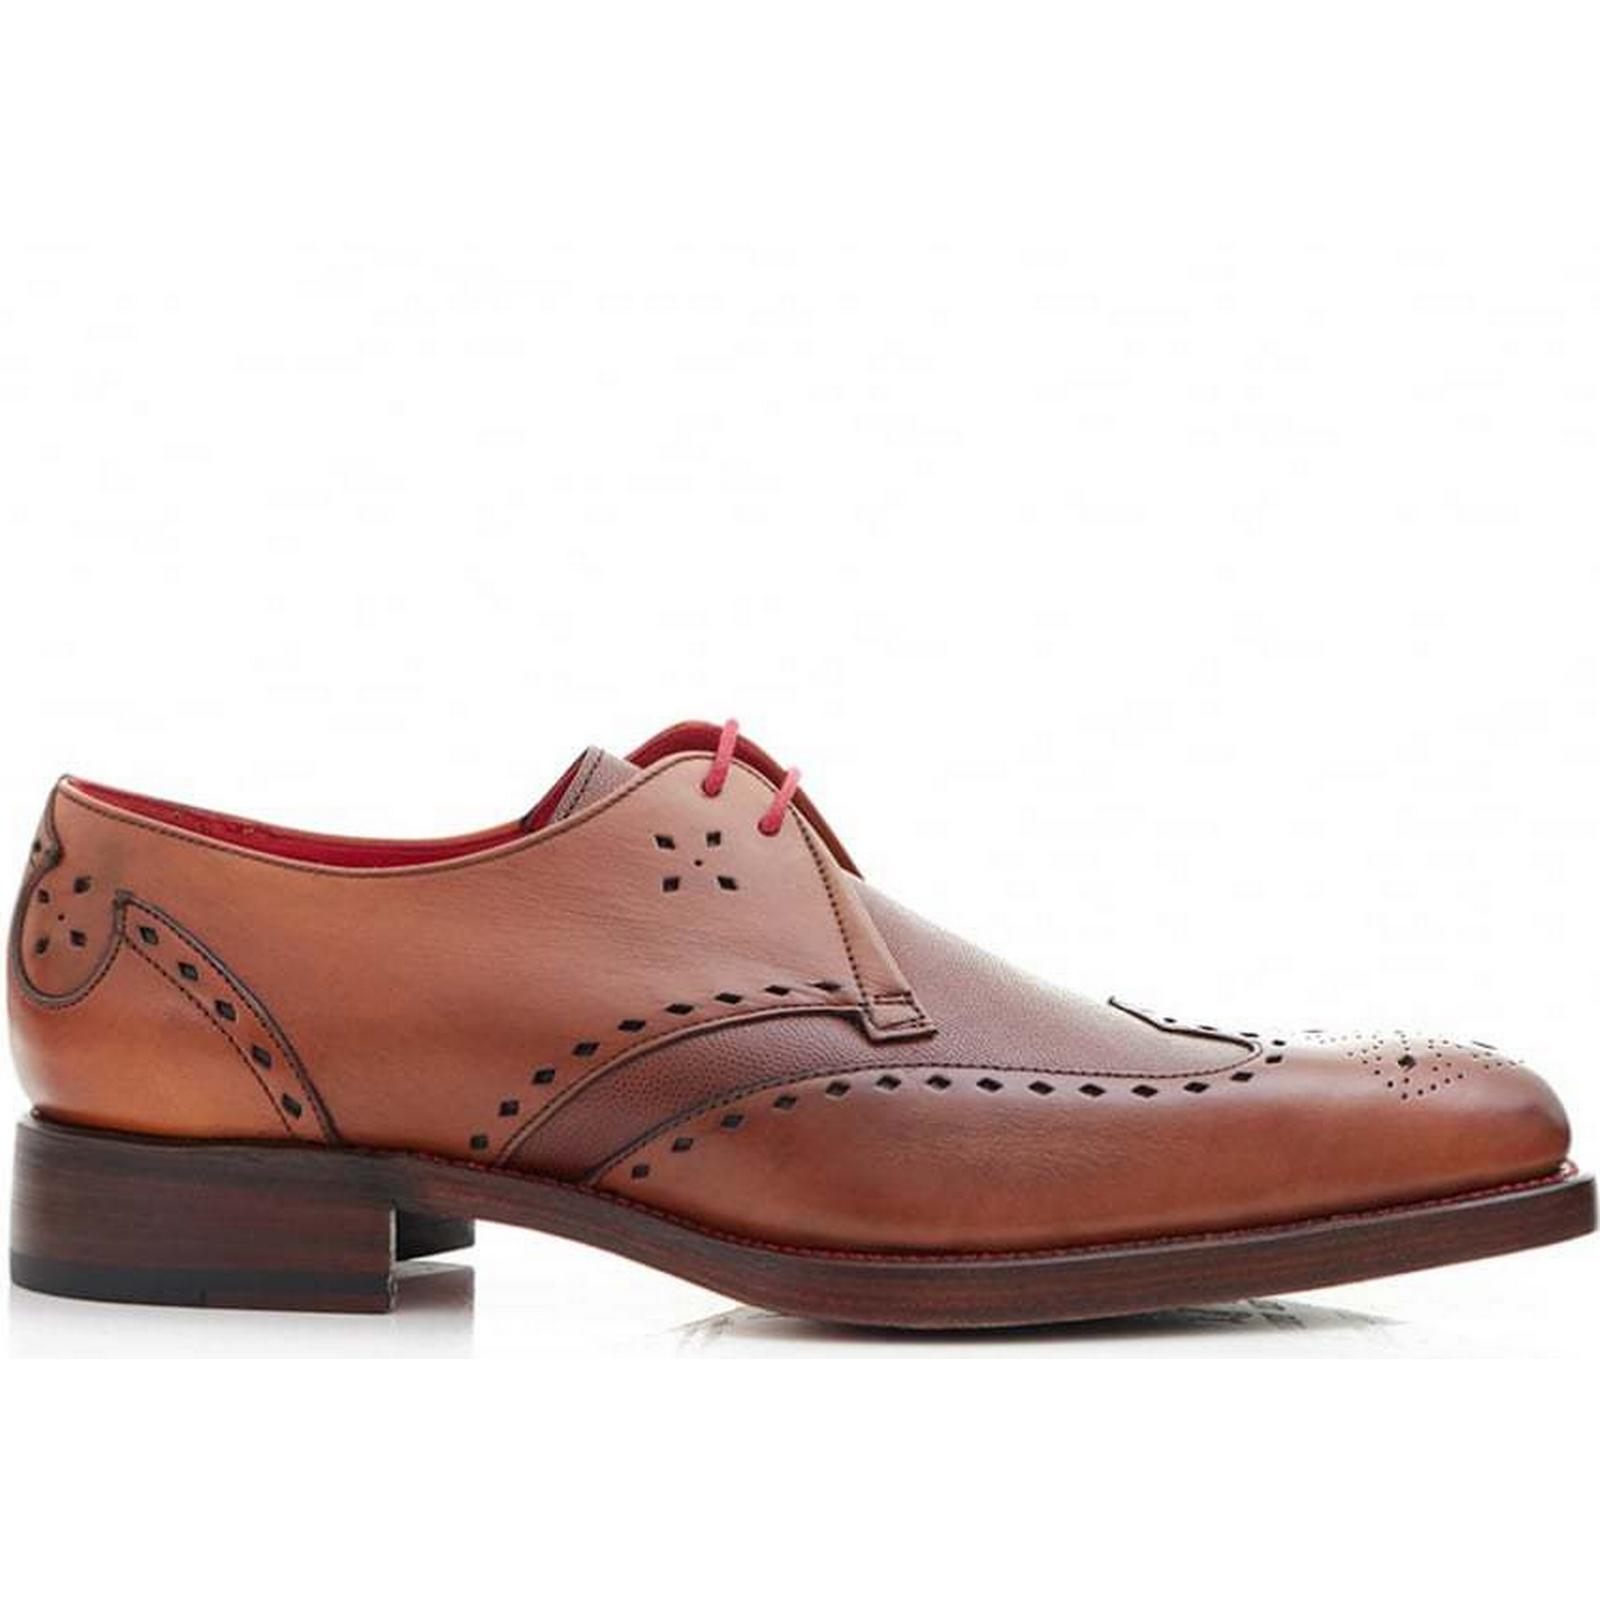 Jeffery Shoes West Mainline Leather Wingtip Shoes Jeffery Colour: MAHOGANY, Size: 9 54aff5